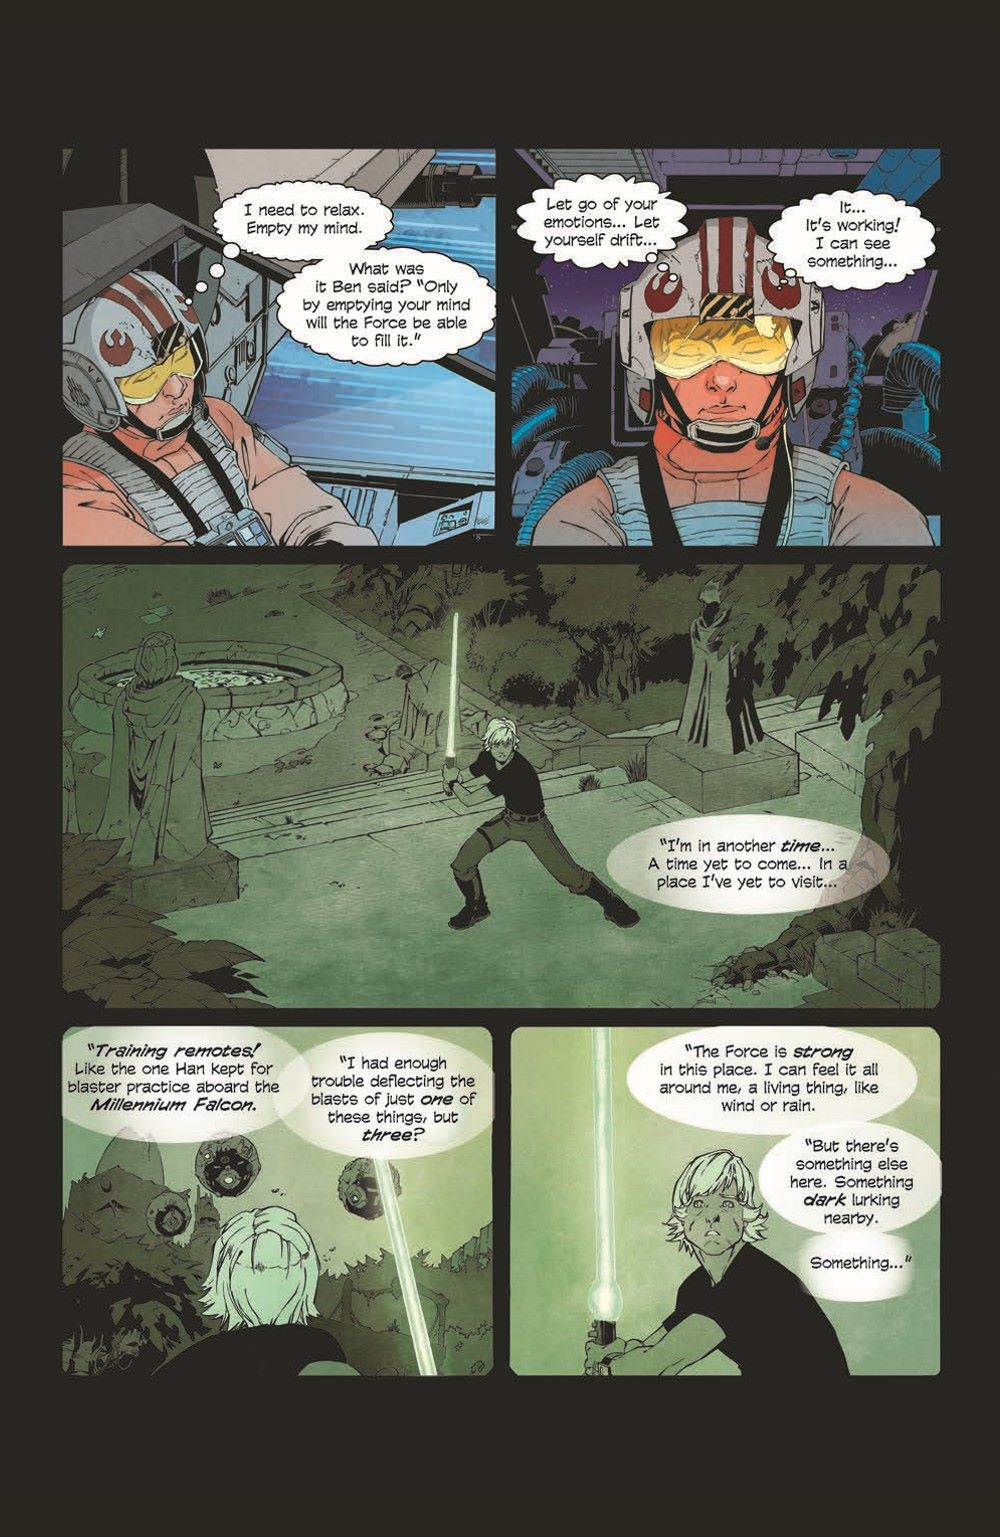 SWA_Weapons01_pr-6 ComicList Previews: STAR WARS ADVENTURES THE WEAPON OF A JEDI #1 (OF 2)